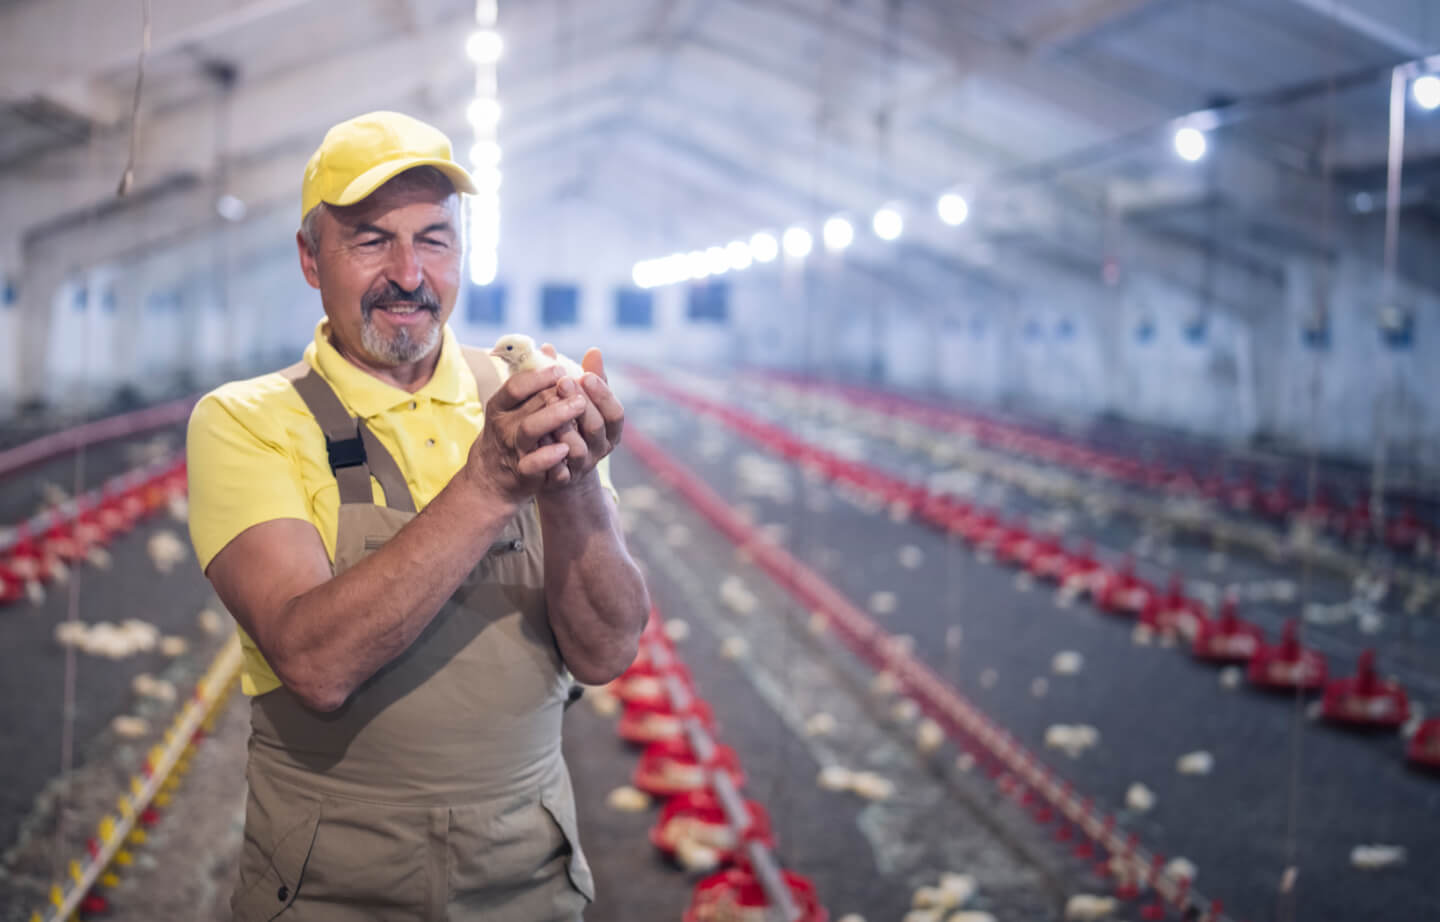 A farmer with a yellow hat, holding a chick